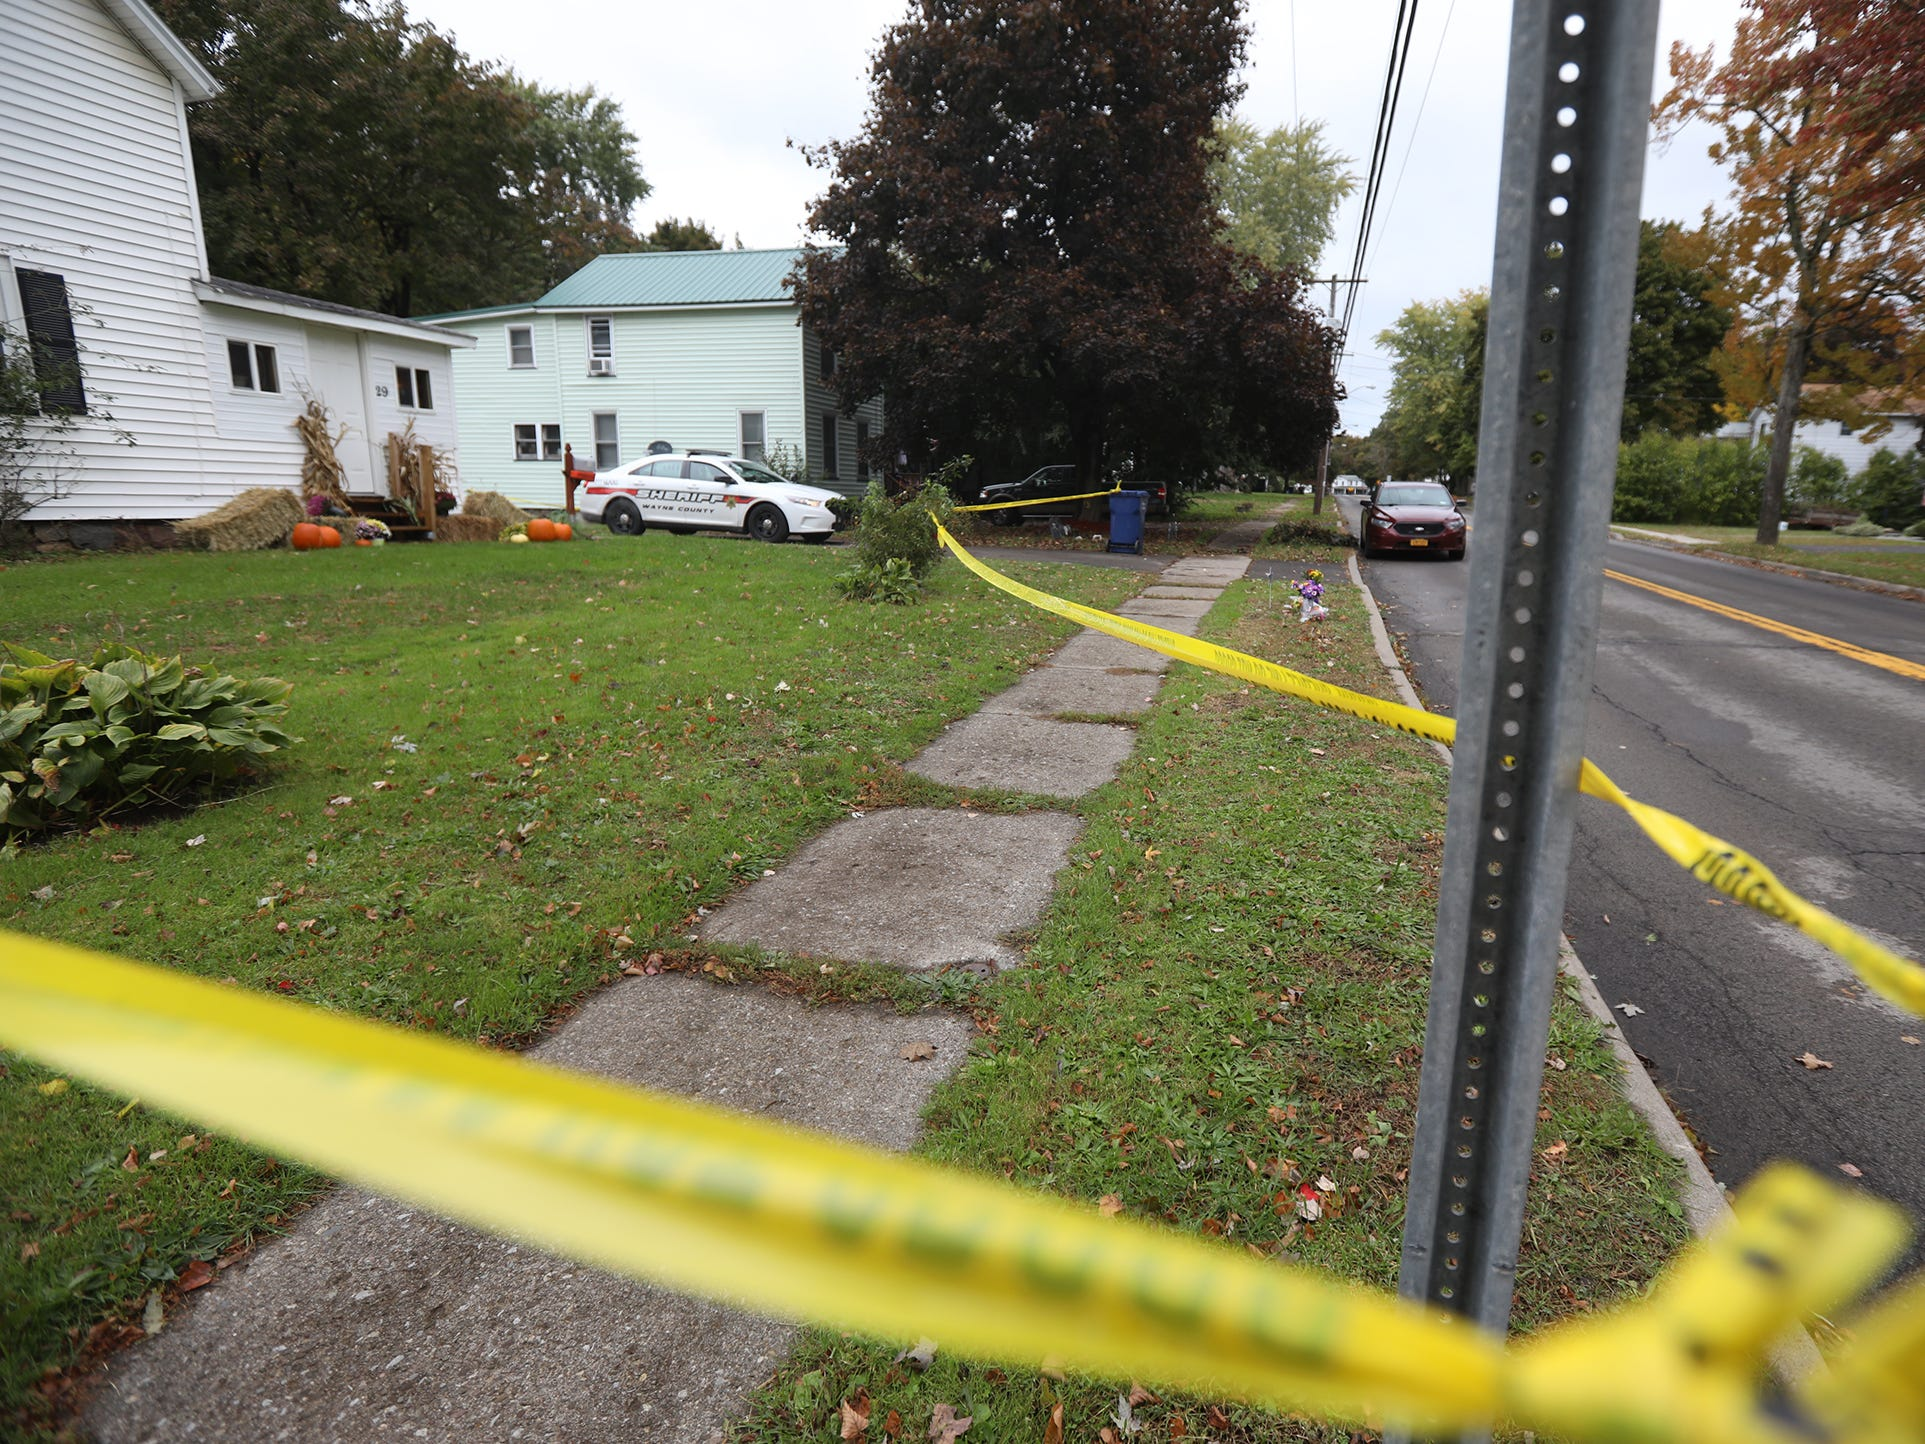 Yellow crime tape and a deputy's car remained at the residence of Joshua Niles and Amber Washburn days after they were fatally shot on Oct. 22, 2018.